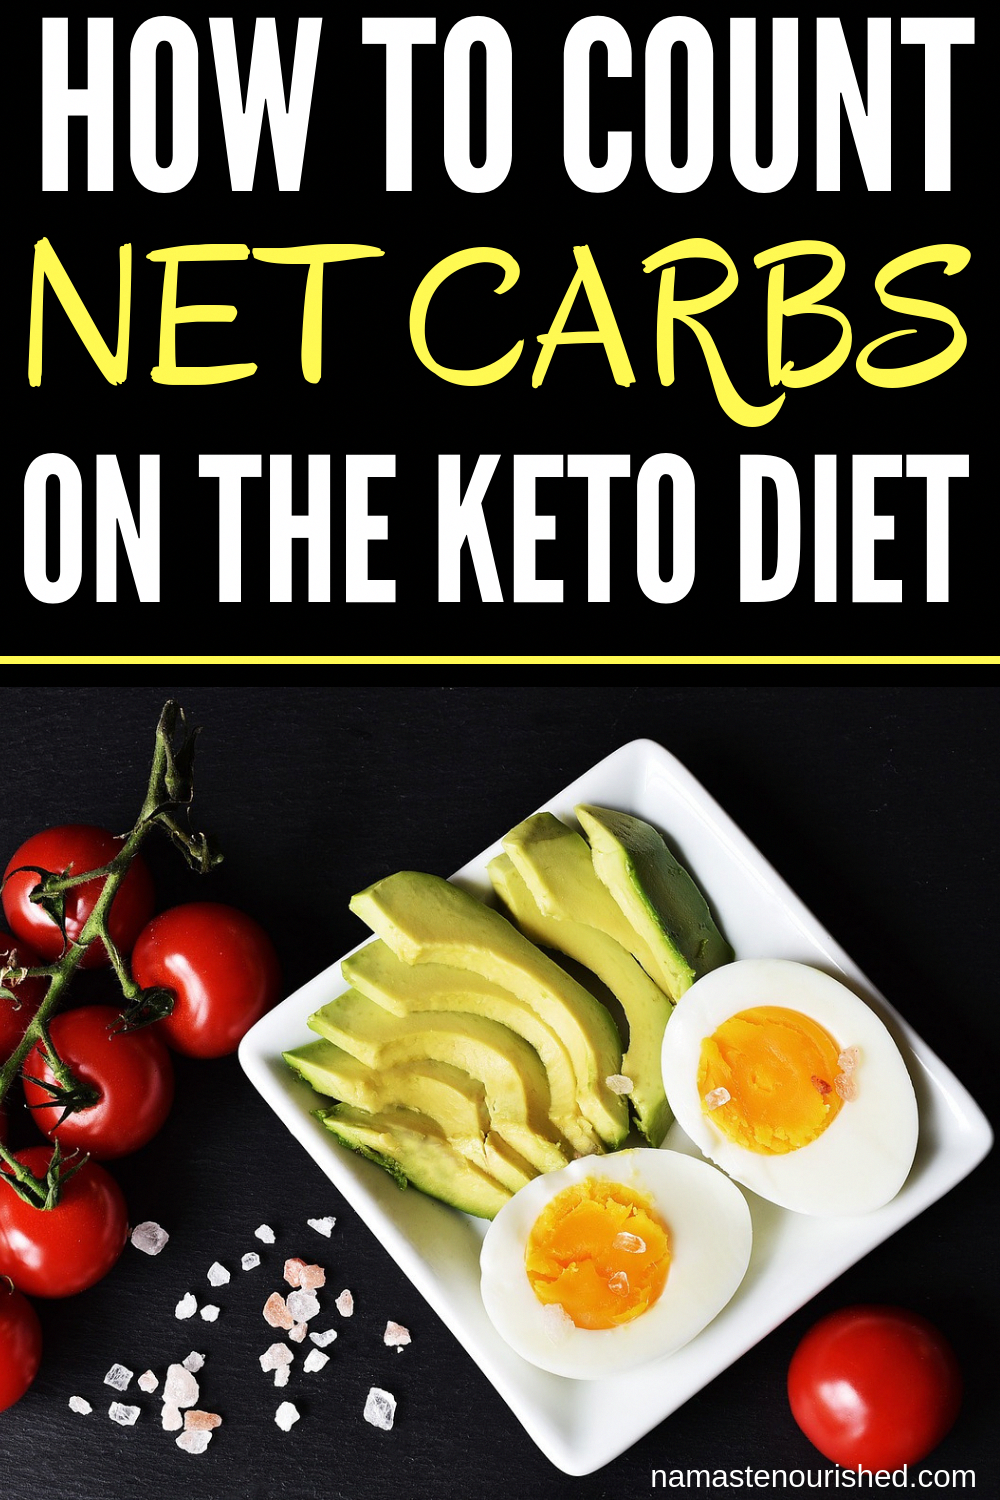 What Is A Sample Keto Diet Meal Plan